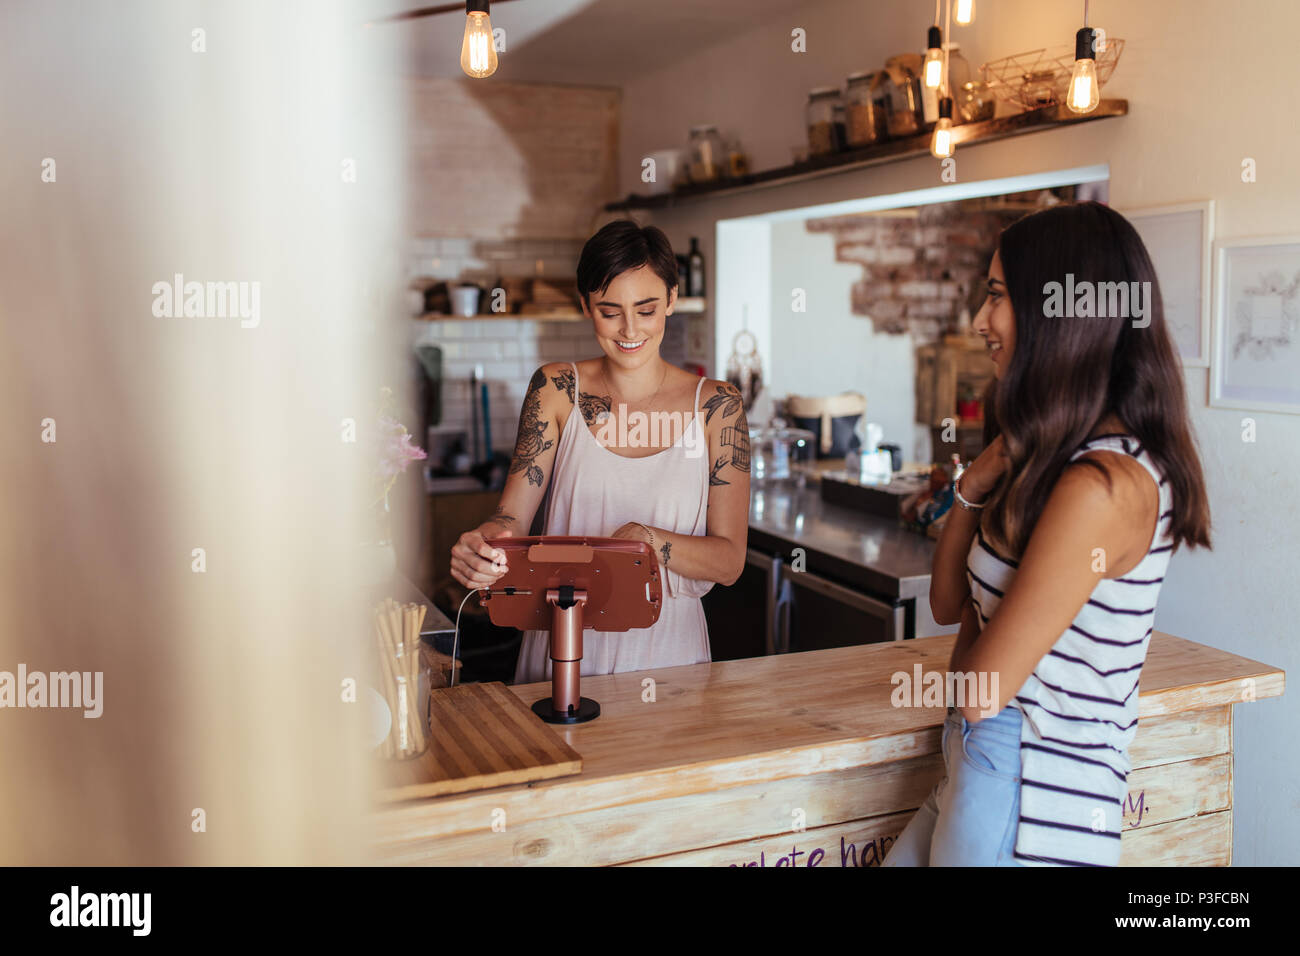 Woman standing at the billing counter of her cafe accepting orders. Woman ordering food across the counter at a restaurant. - Stock Image